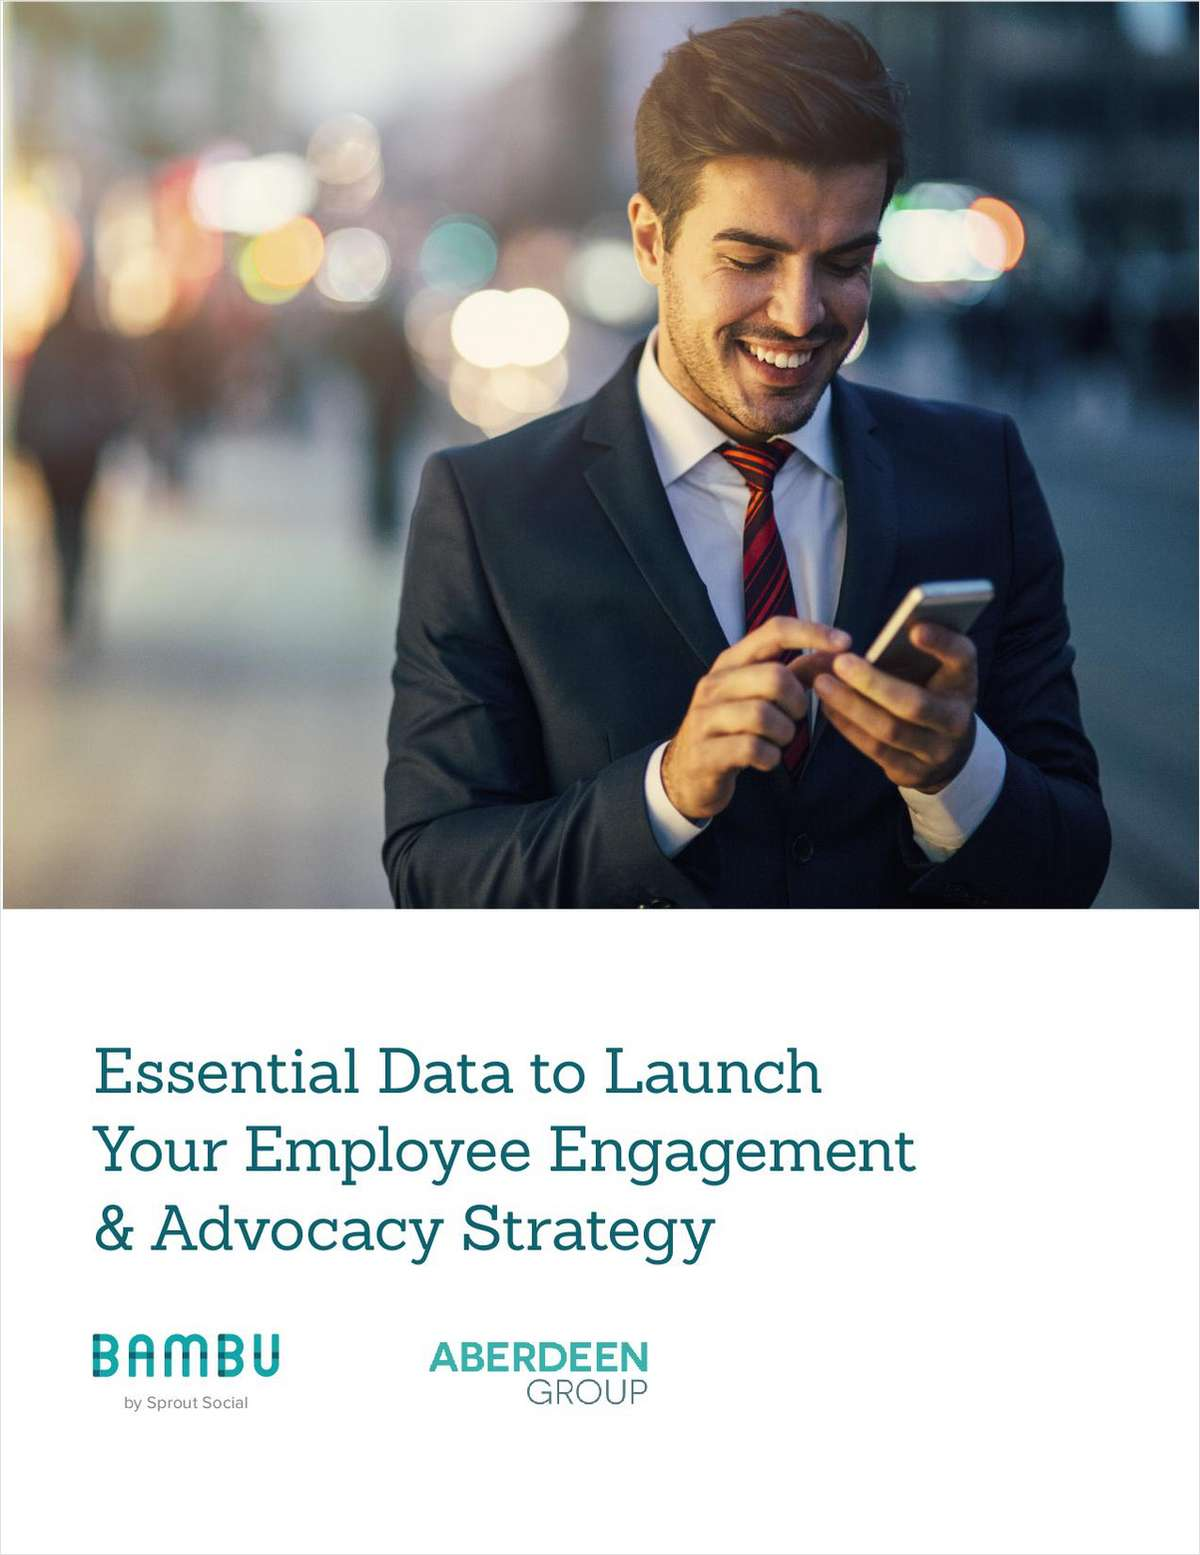 Essential Data to Launch Your Employee Engagement & Advocacy Strategy